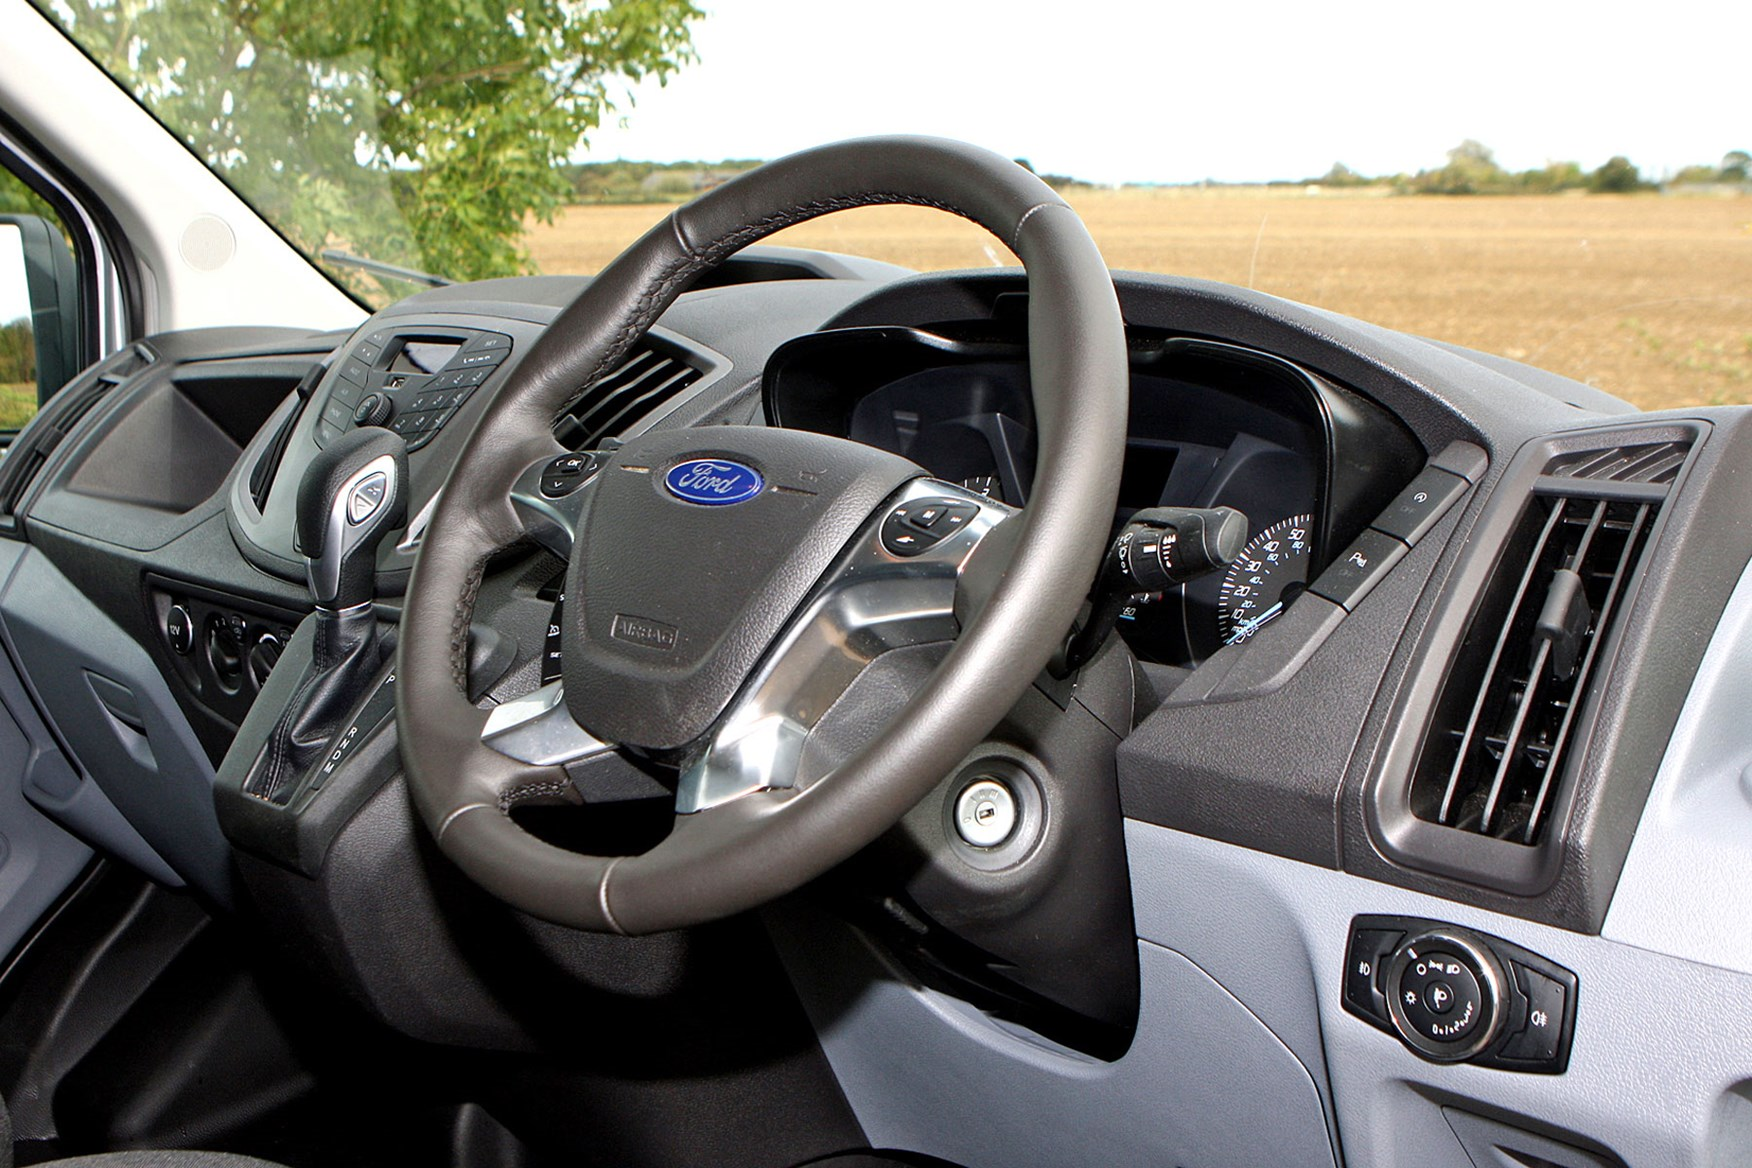 Ford Transit (2014-on) six-speed automatic